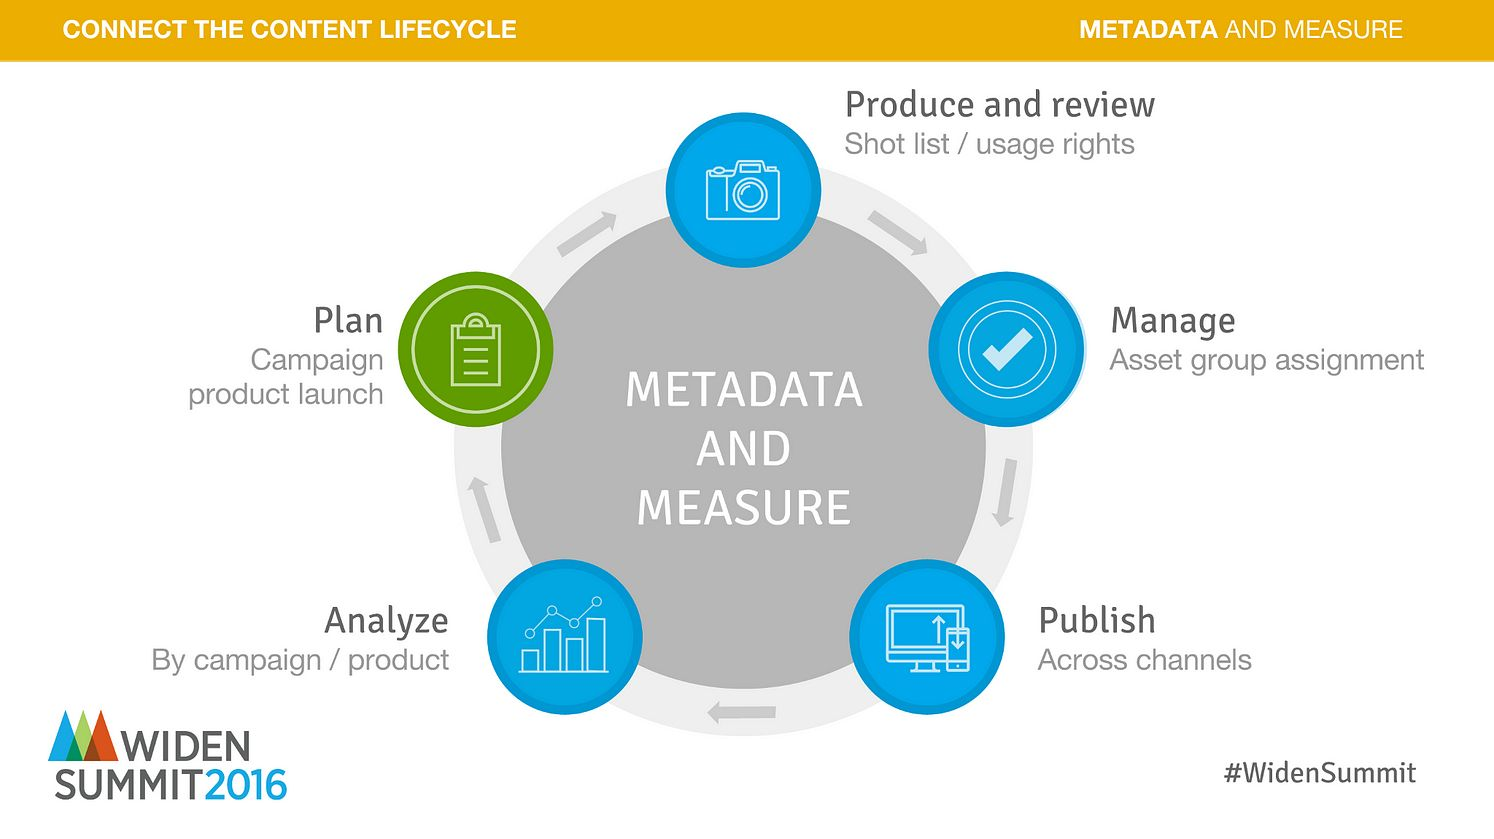 Visual Content & Metadata